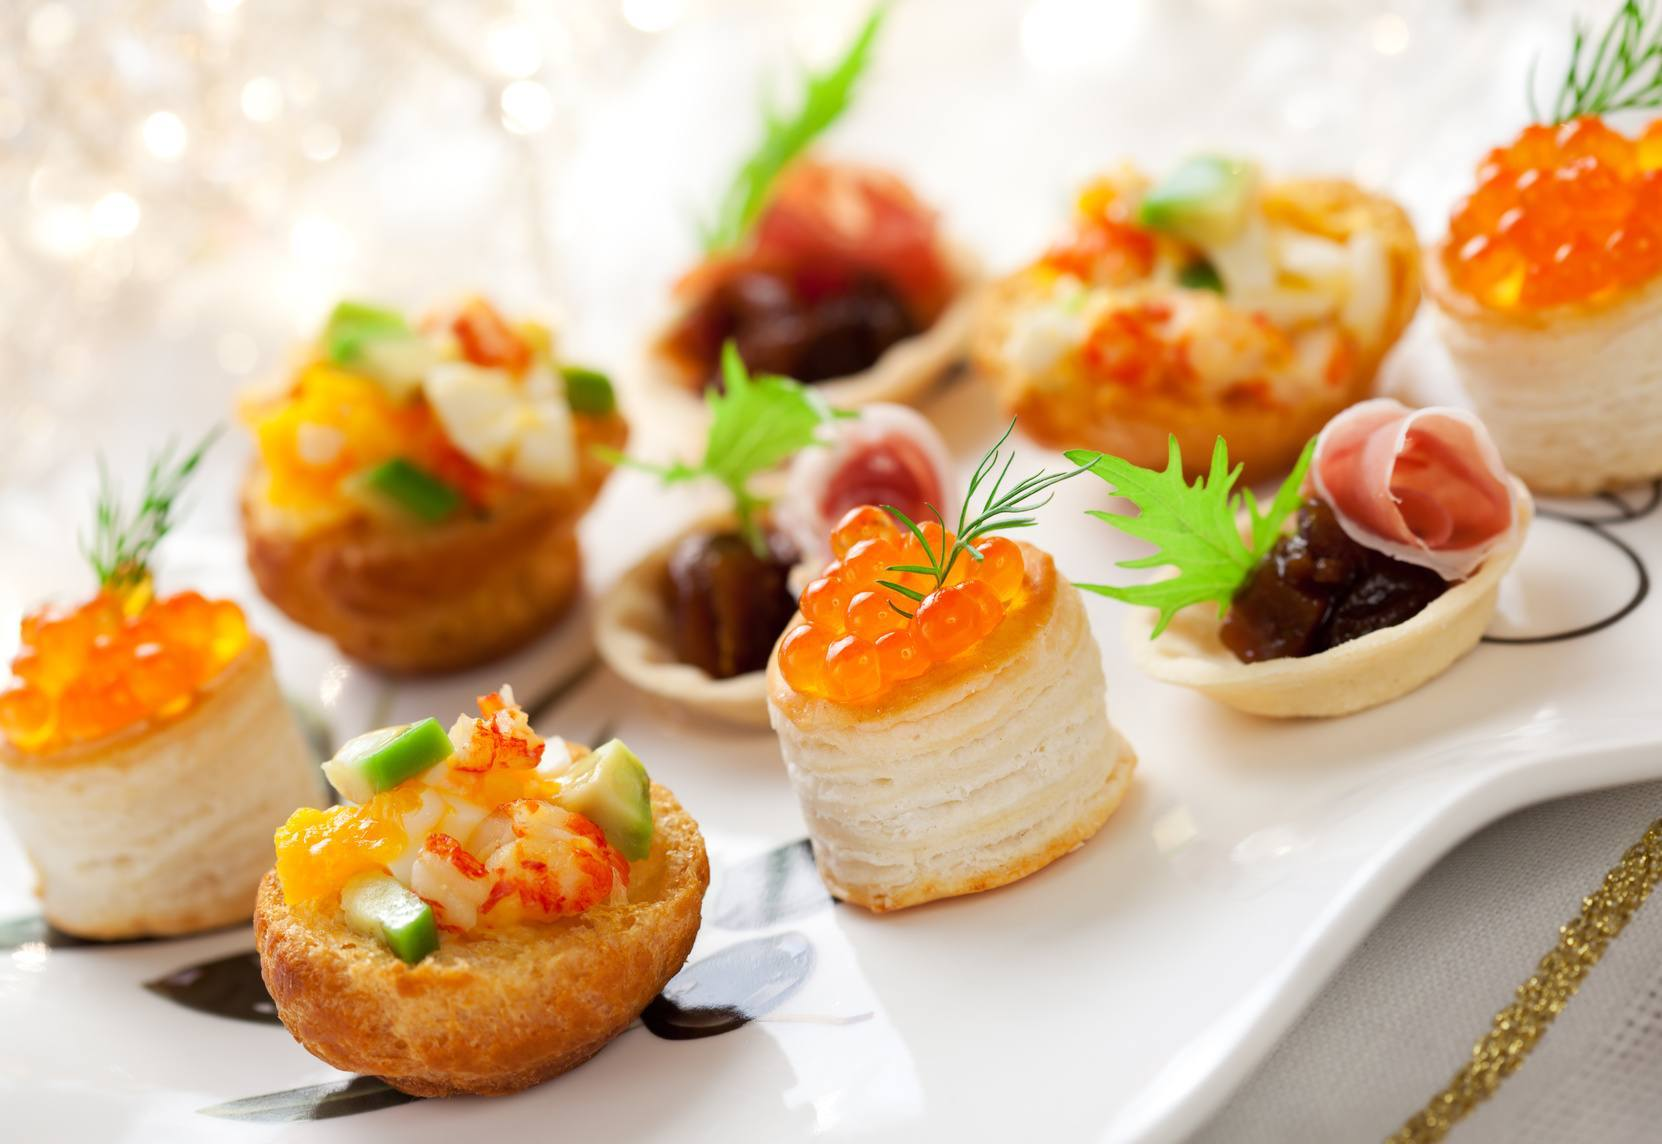 Canap s fr os la guia de las vitaminas for Canape food ideas